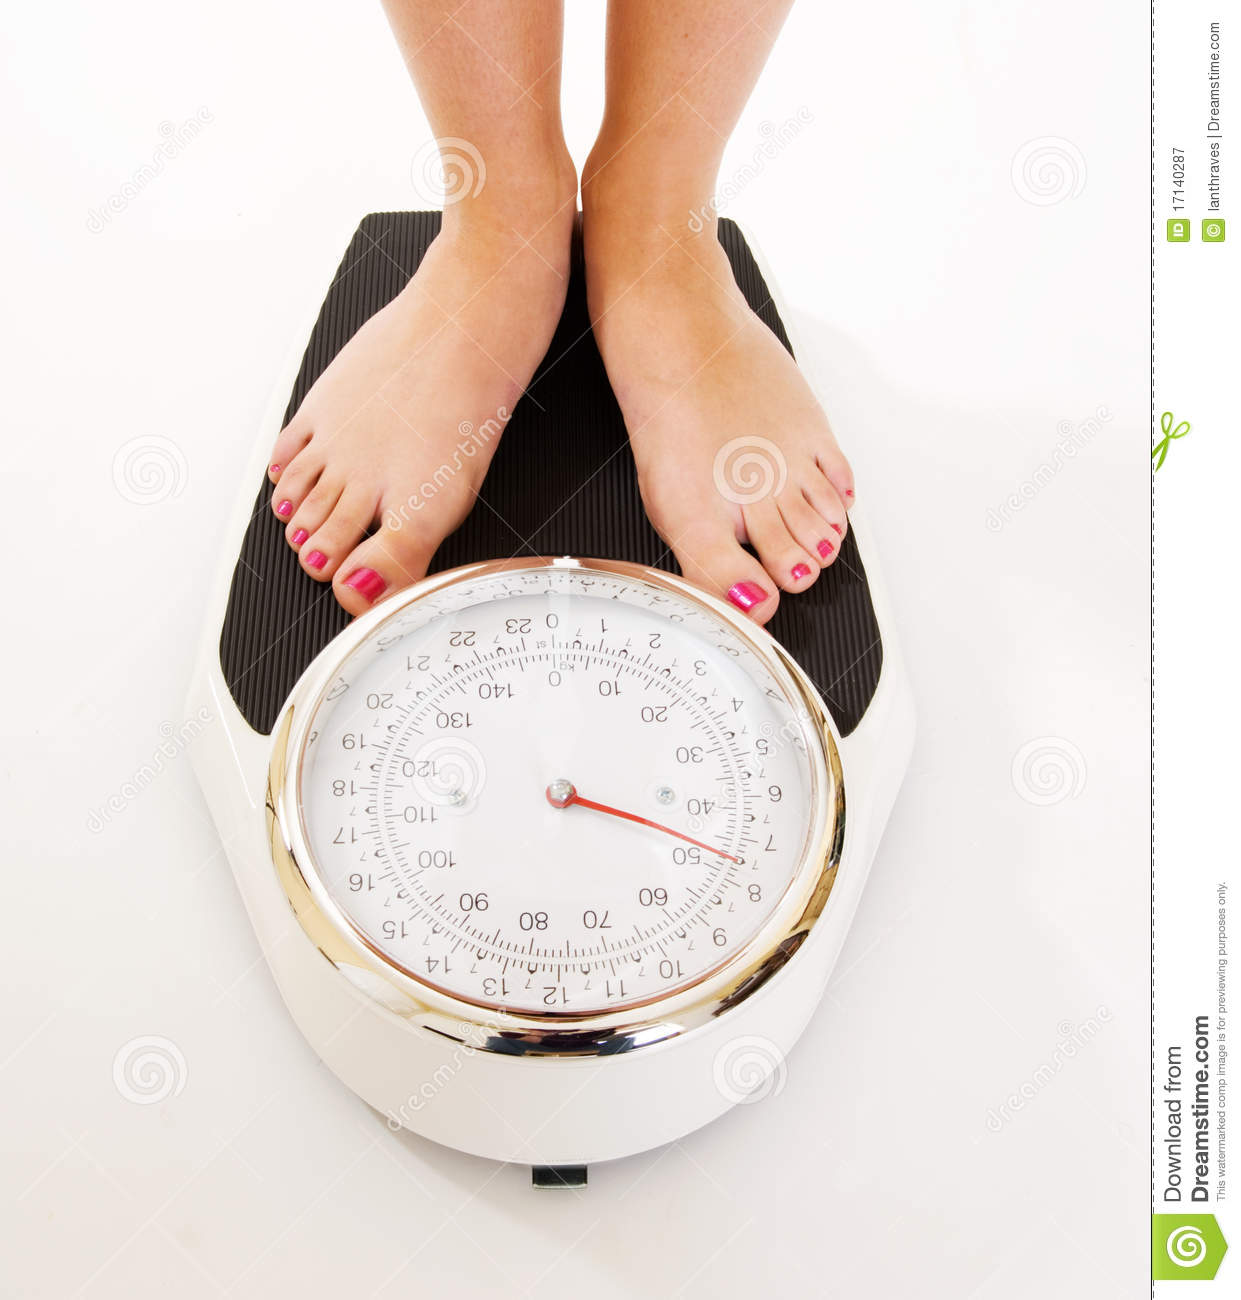 high pressure map with Royalty Free Stock Photography Woman S Feet Large Weighing Scales Image17140287 on Industrial  munications in addition What Is Radon additionally Research also WR final tstrms furthermore Vasoactive Drugs 57770474.